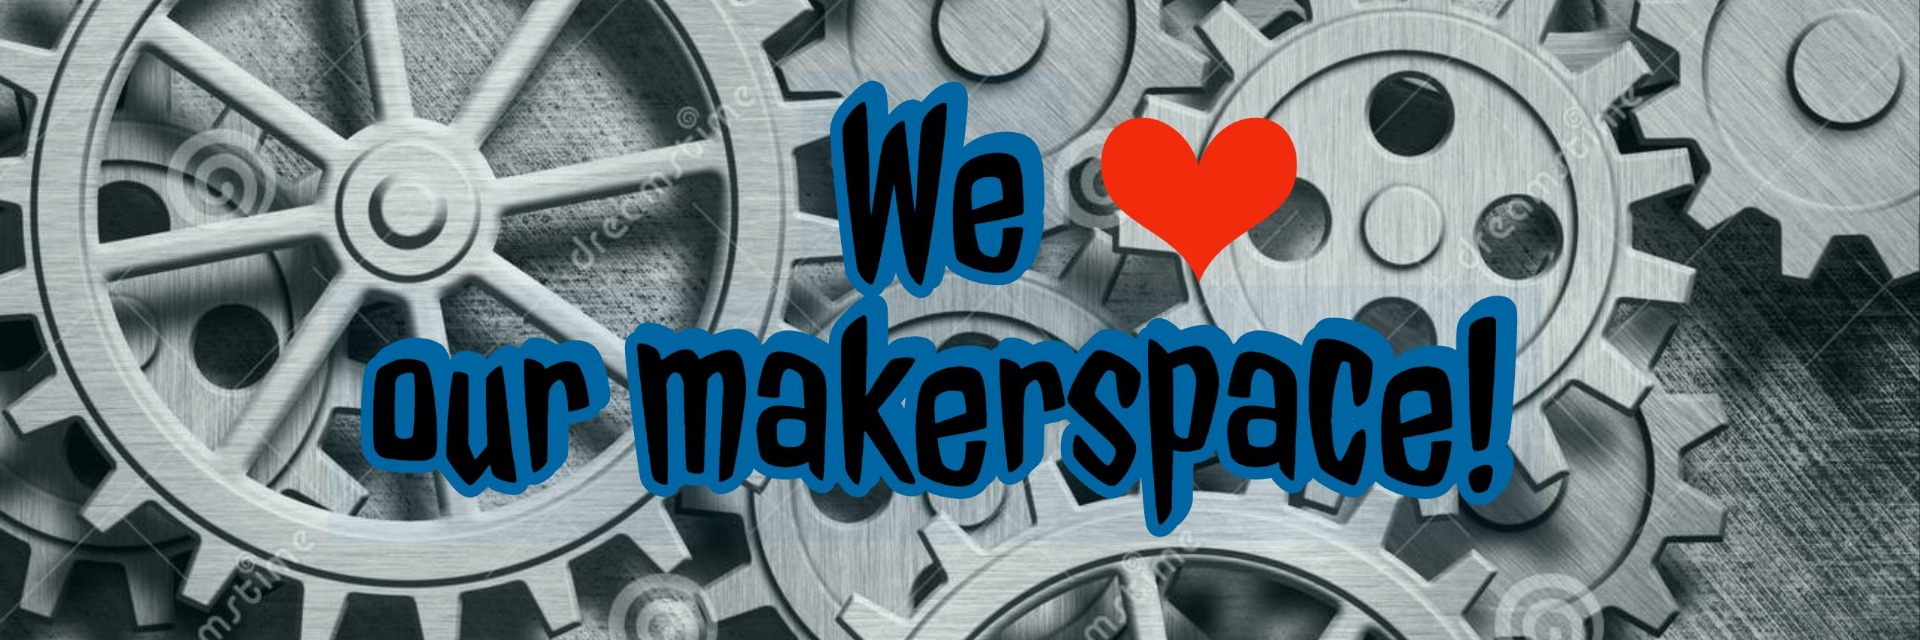 We love our Makerspace image